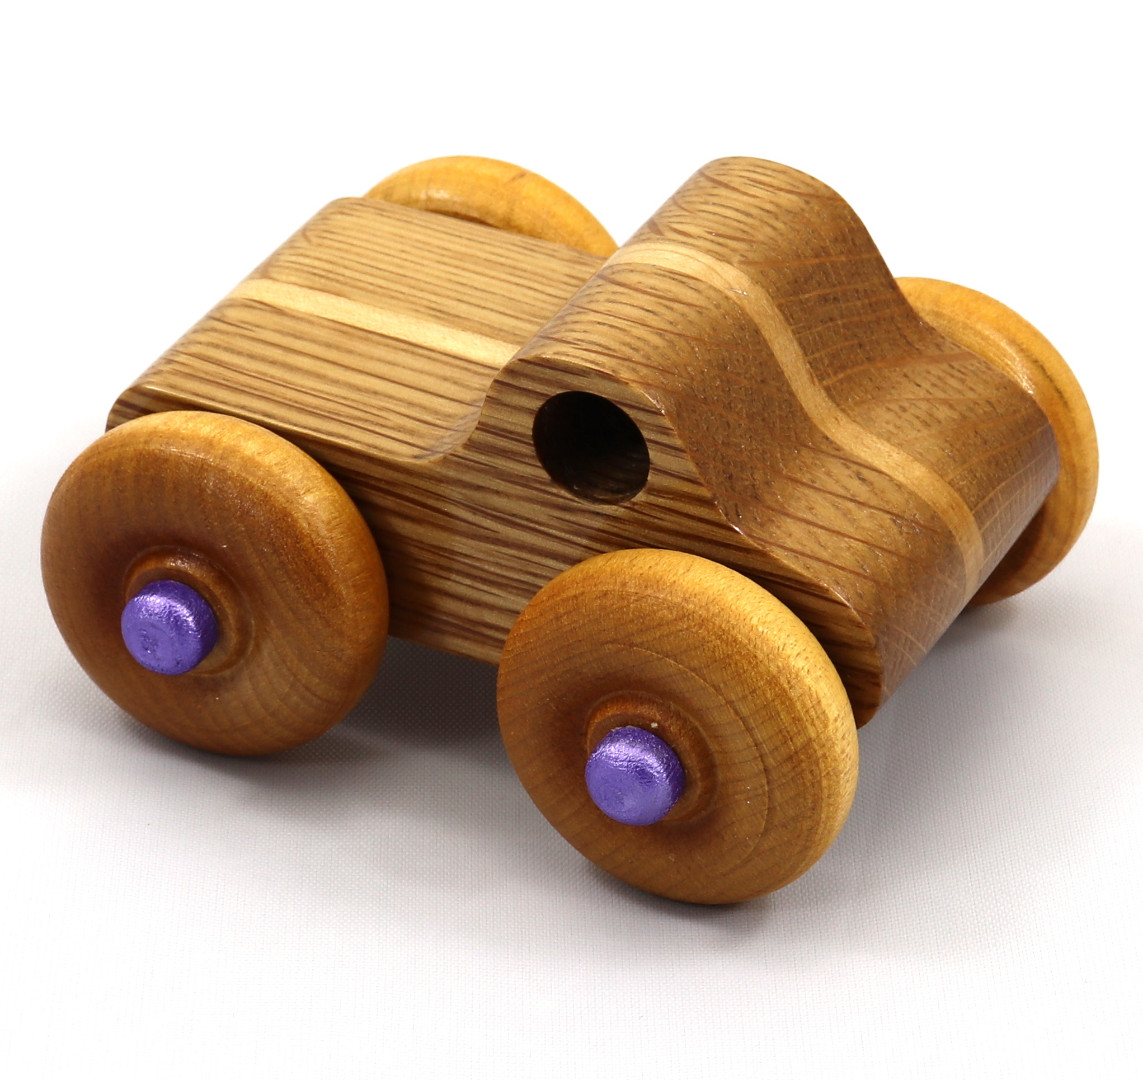 20180427-184219 - Wooden Toy Truck - Play Pal - Monster Truck - Lamina.jpg